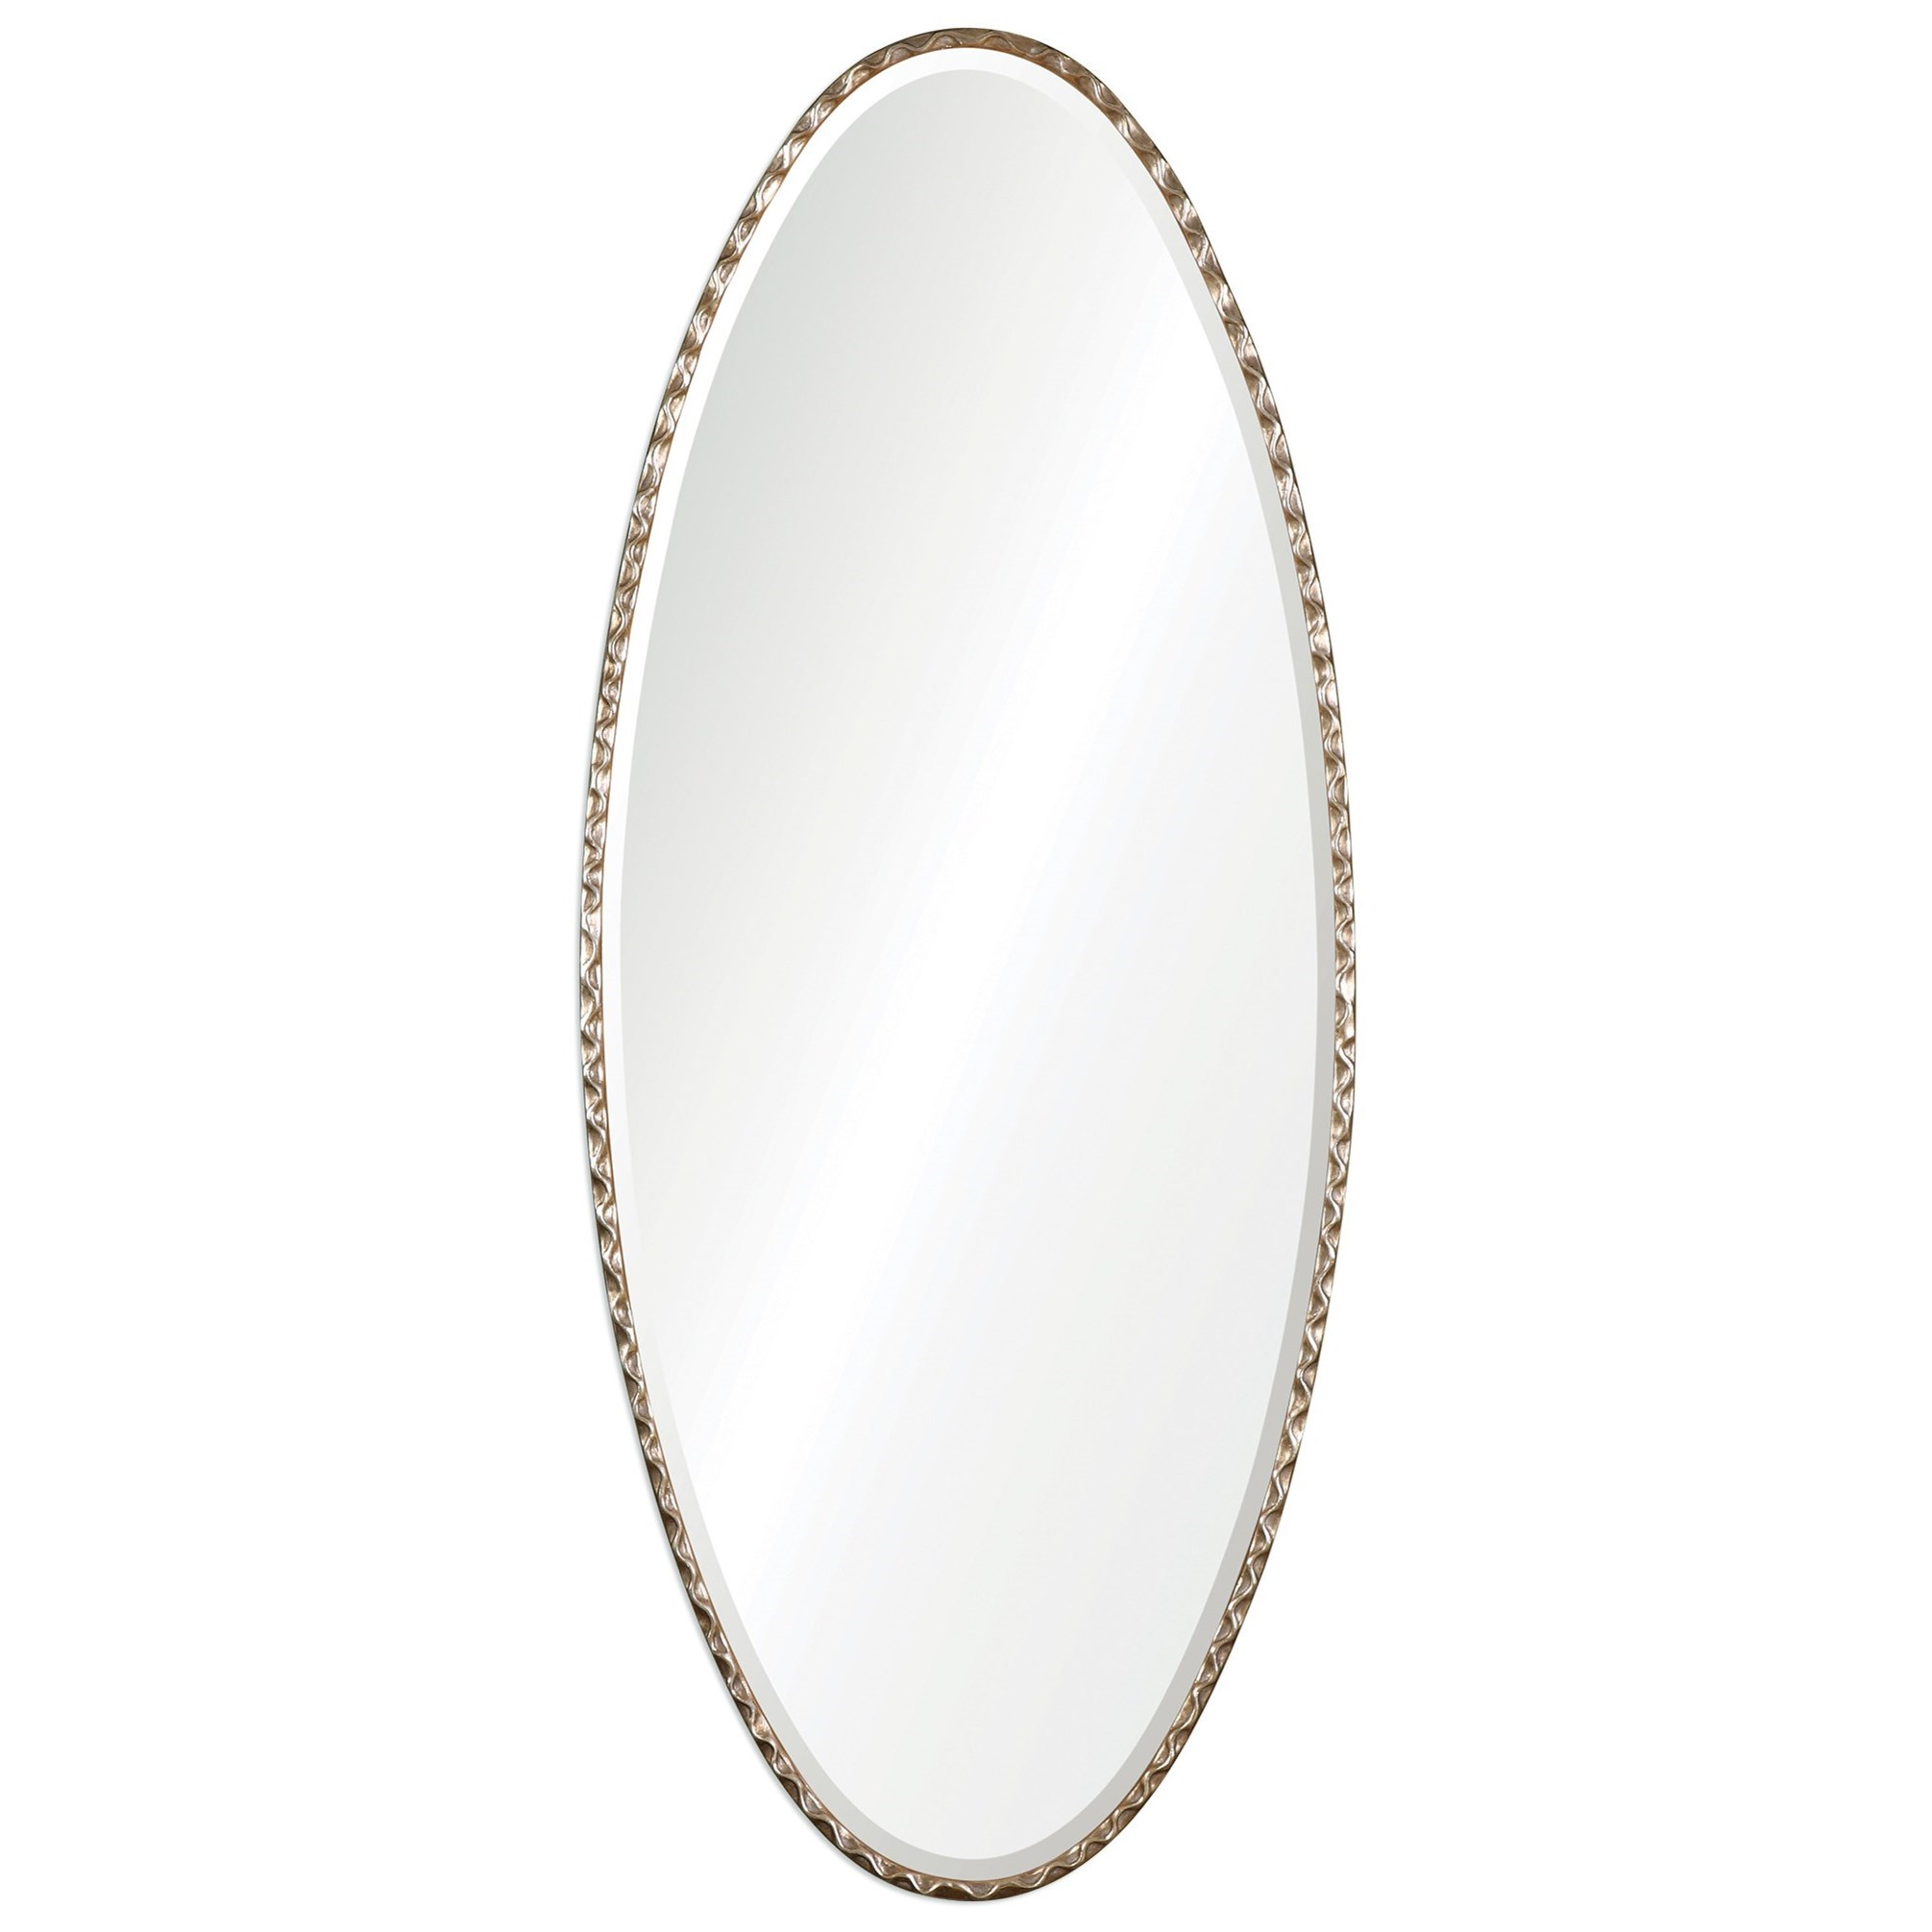 Uttermost Mirrors  Vicenza Elongated Oval Mirror - Item Number: 09126